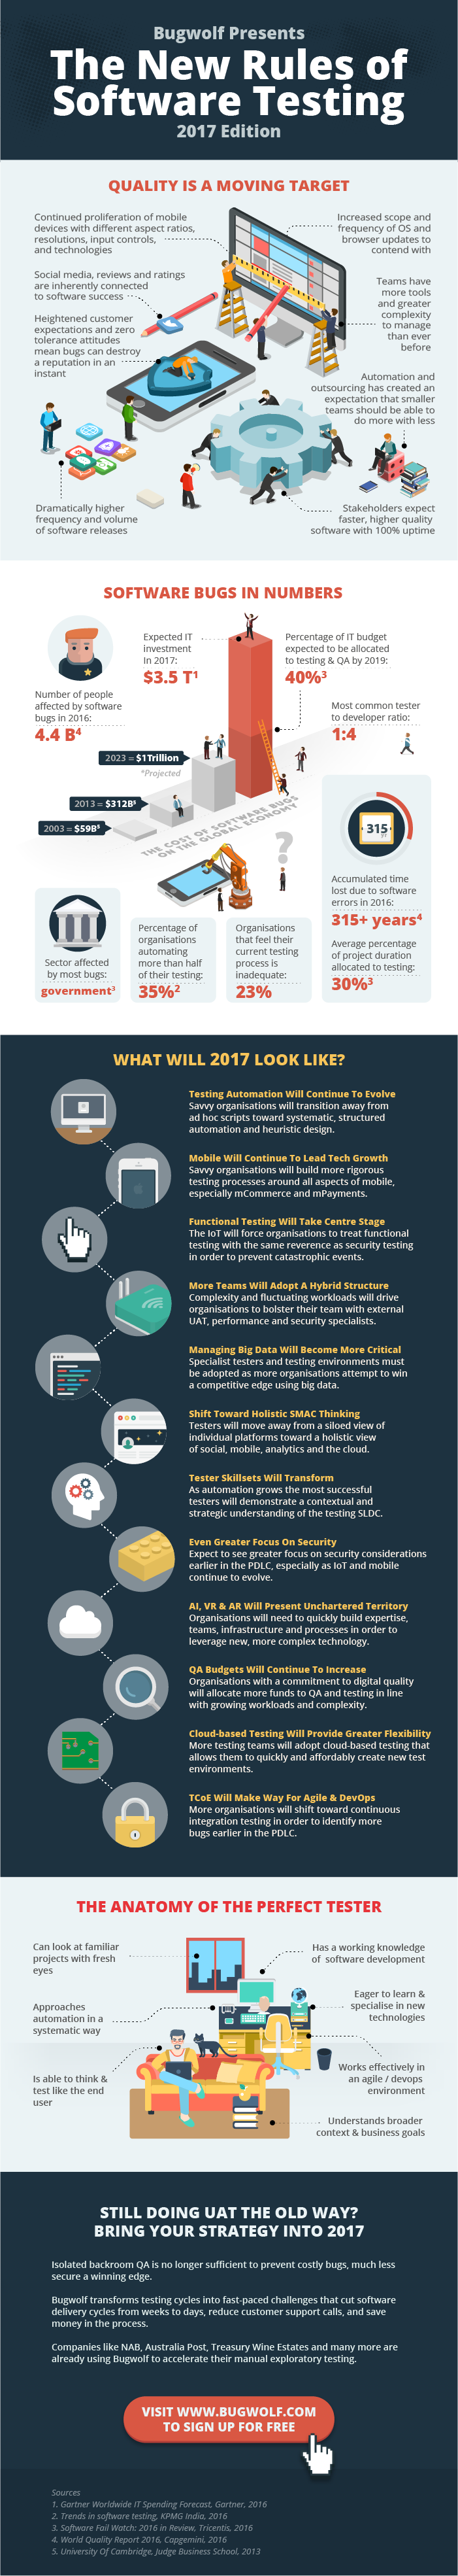 Infographic showing software testing trends in 2017